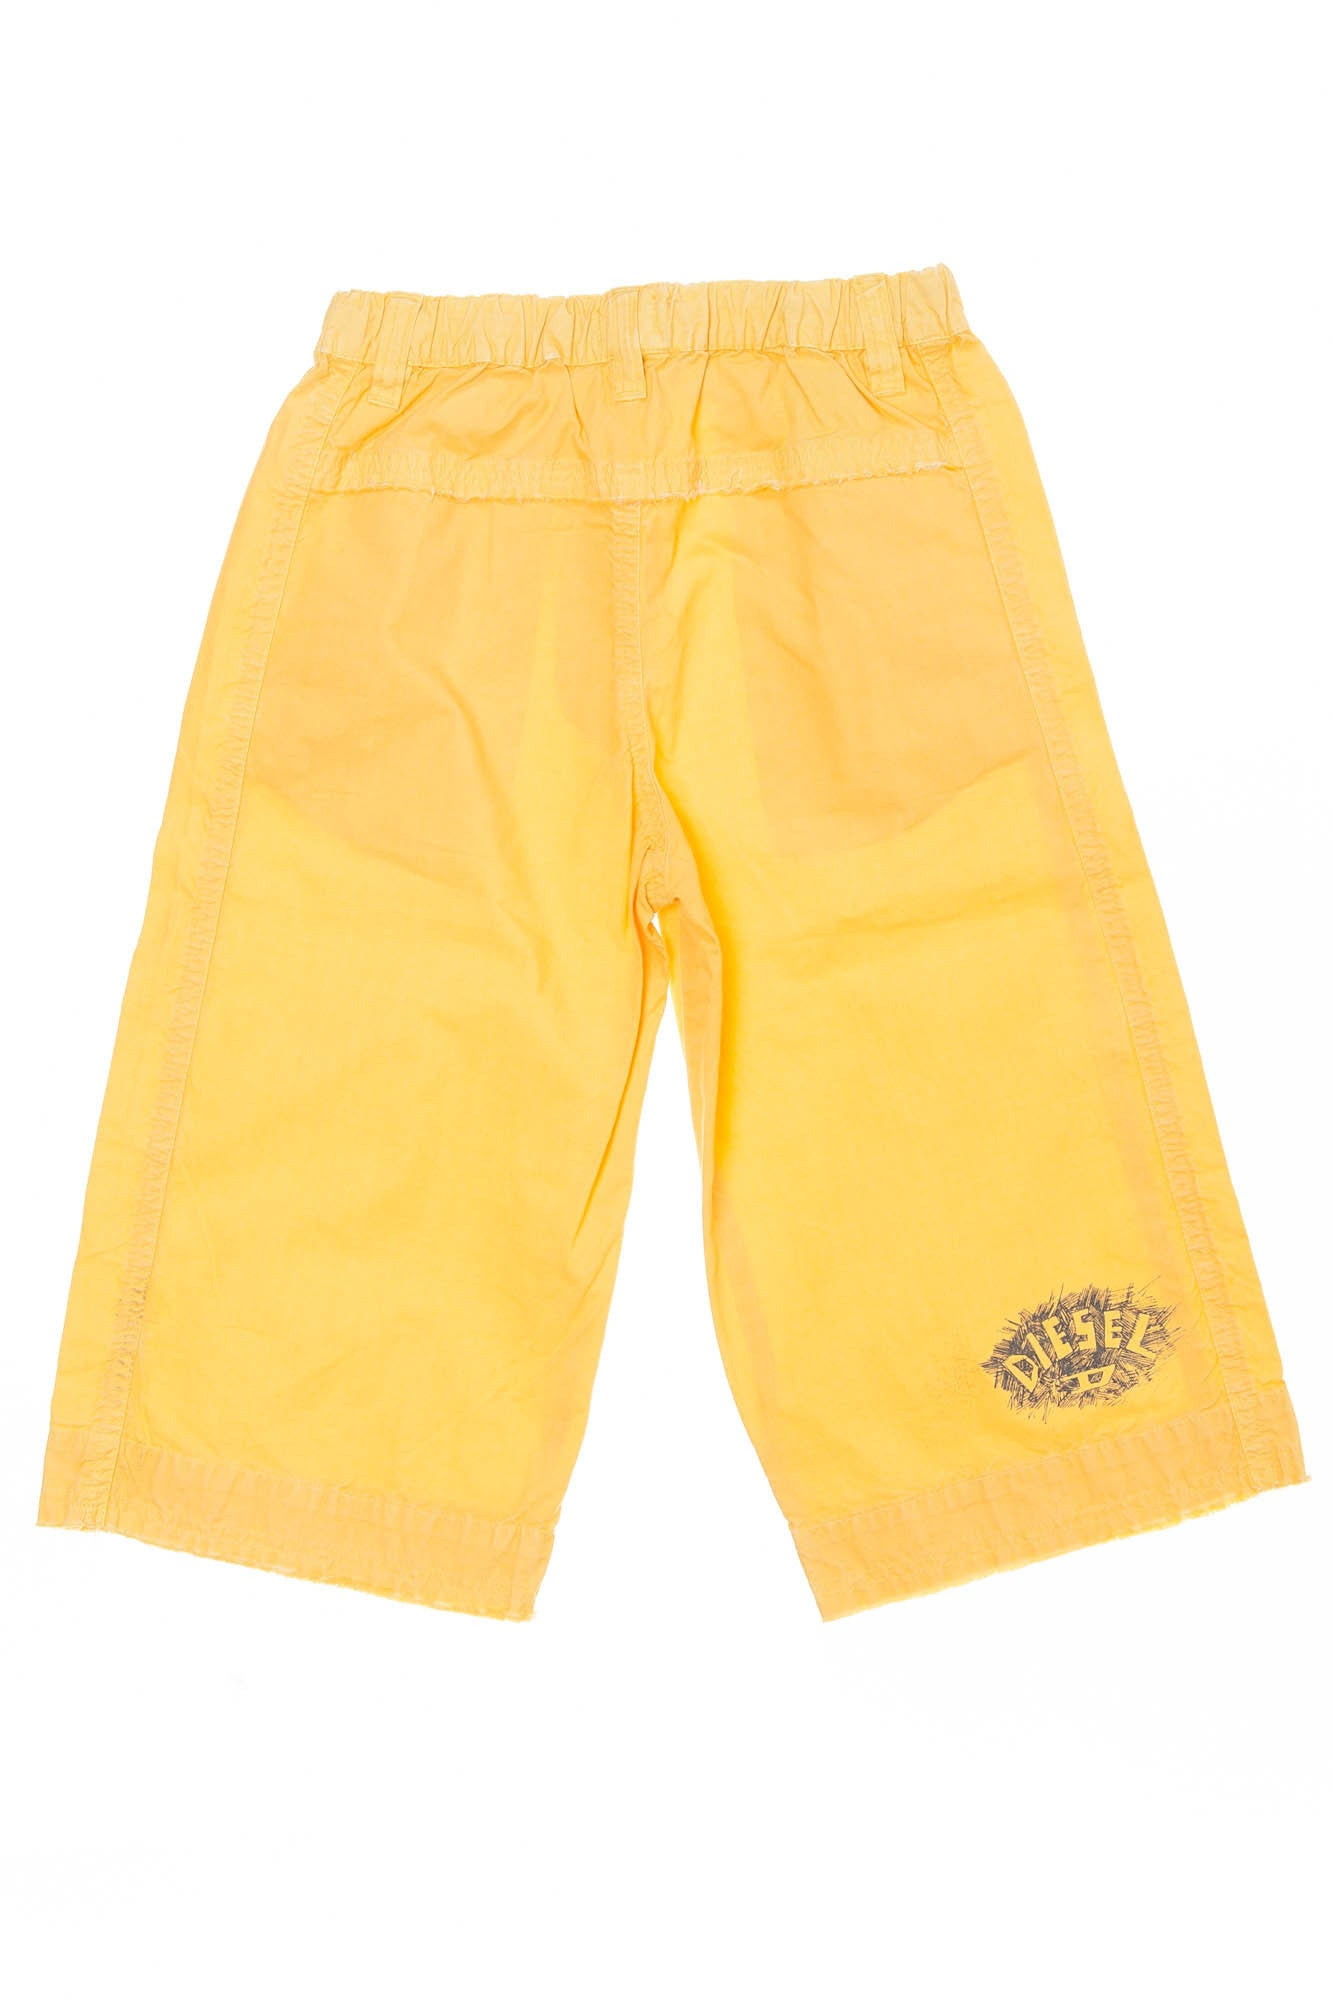 8f393429a1 Diesel - Yellow Shorts - 6 – LUXHAVE